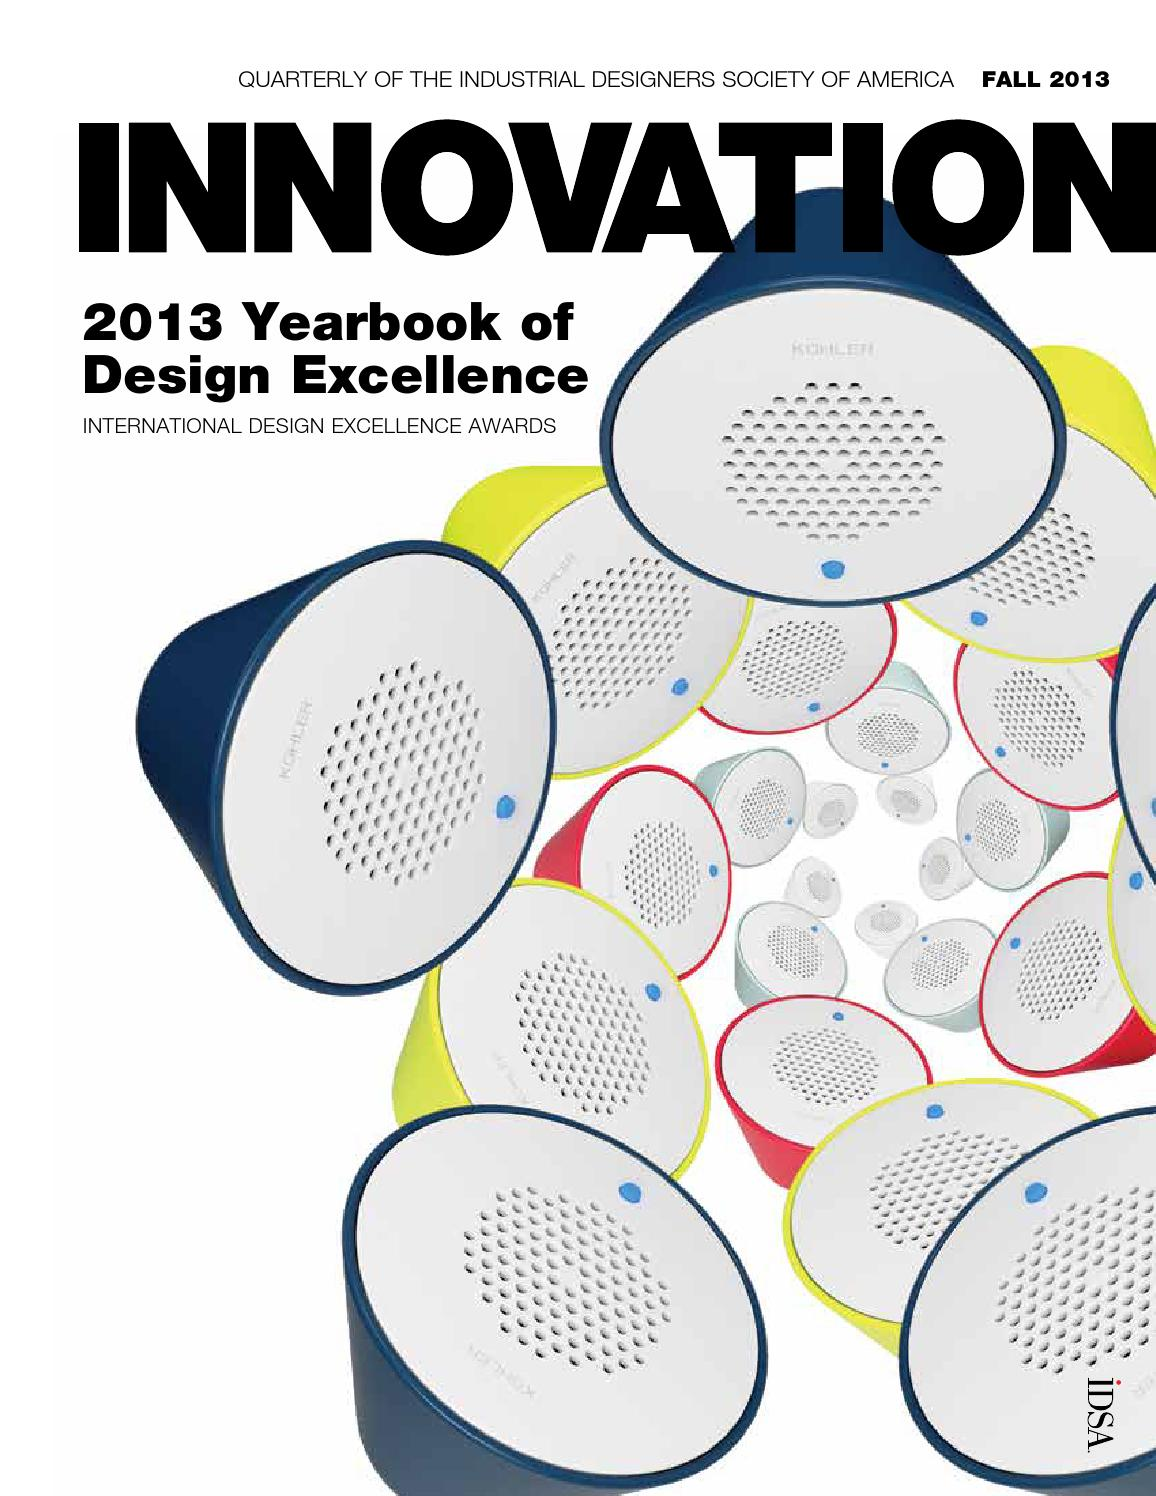 Innovation Fall 2013  Yearbook of Design Excellence by Industrial Designers  Society of America - issuu 72e2f90f21d0